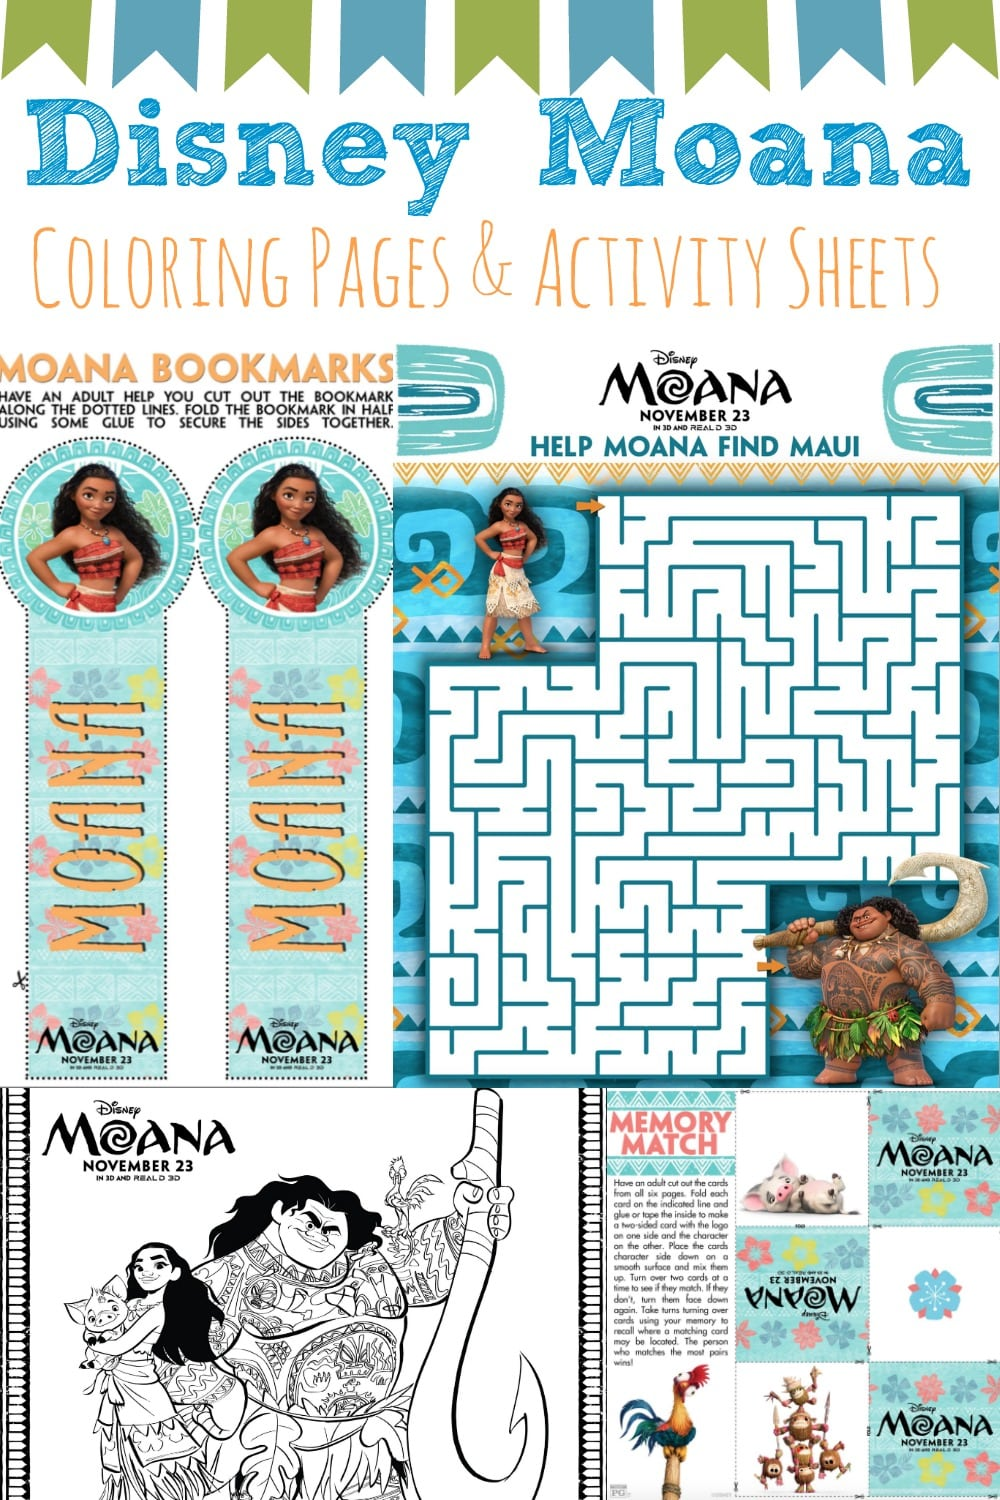 Moana Coloring Pages and Activity Sheets #Moana - simplytodaylife.com